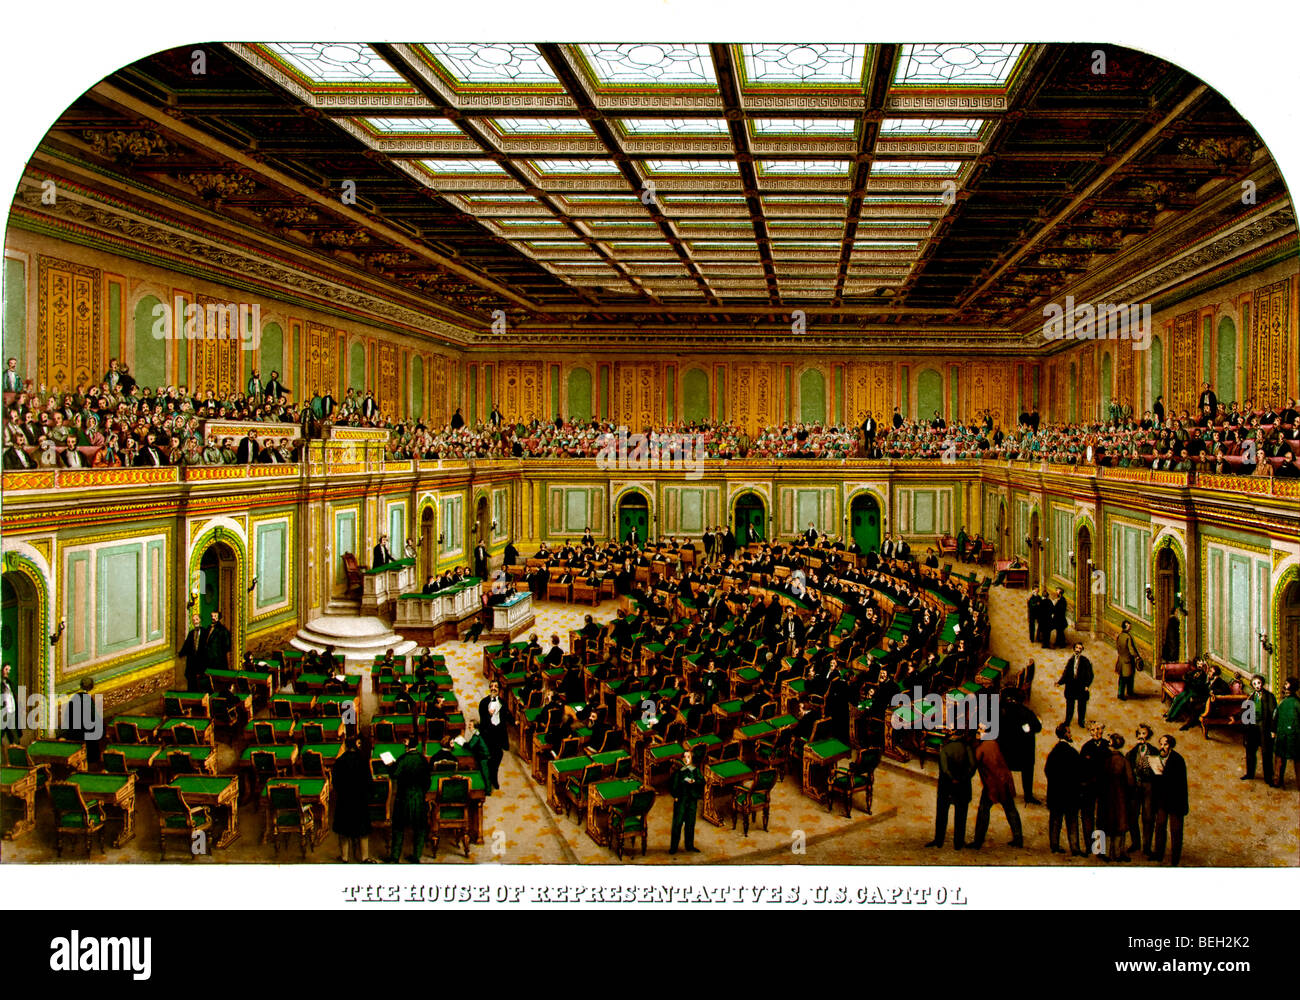 Interior View Of The House Of Representatives Wing Of The U.S. Capitol  Showing Congress In Session And Spectators In The Gallery